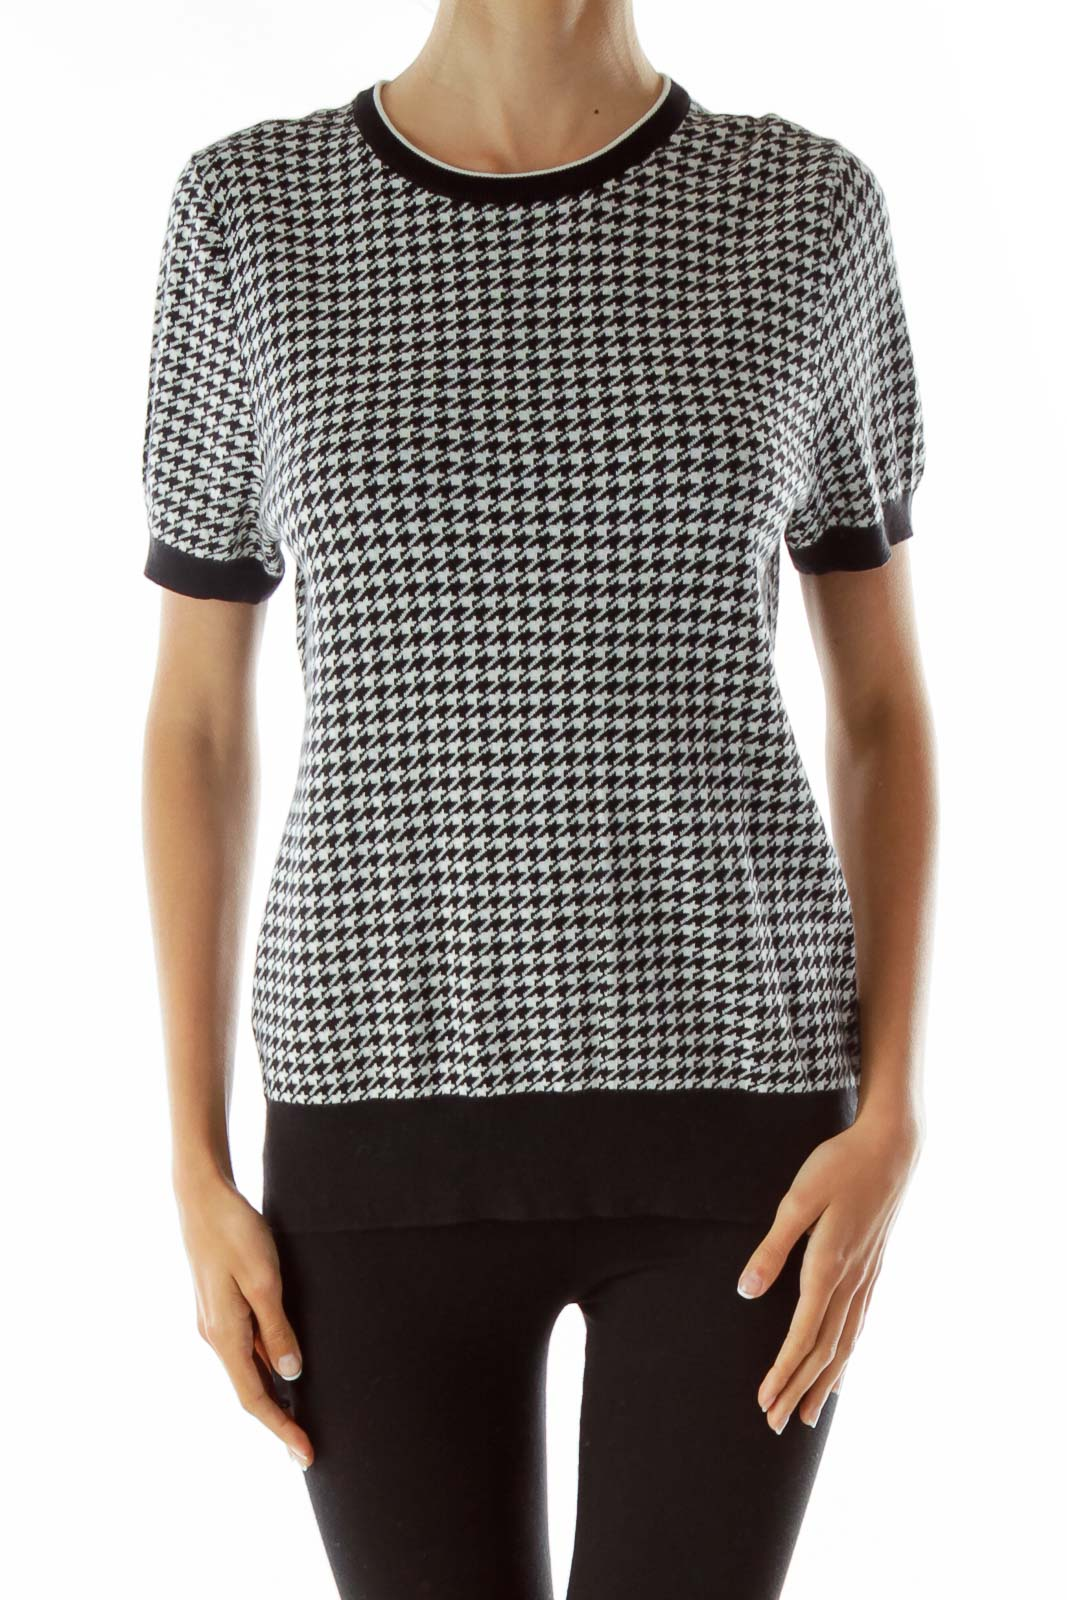 Black White Houndstooth Print Knit